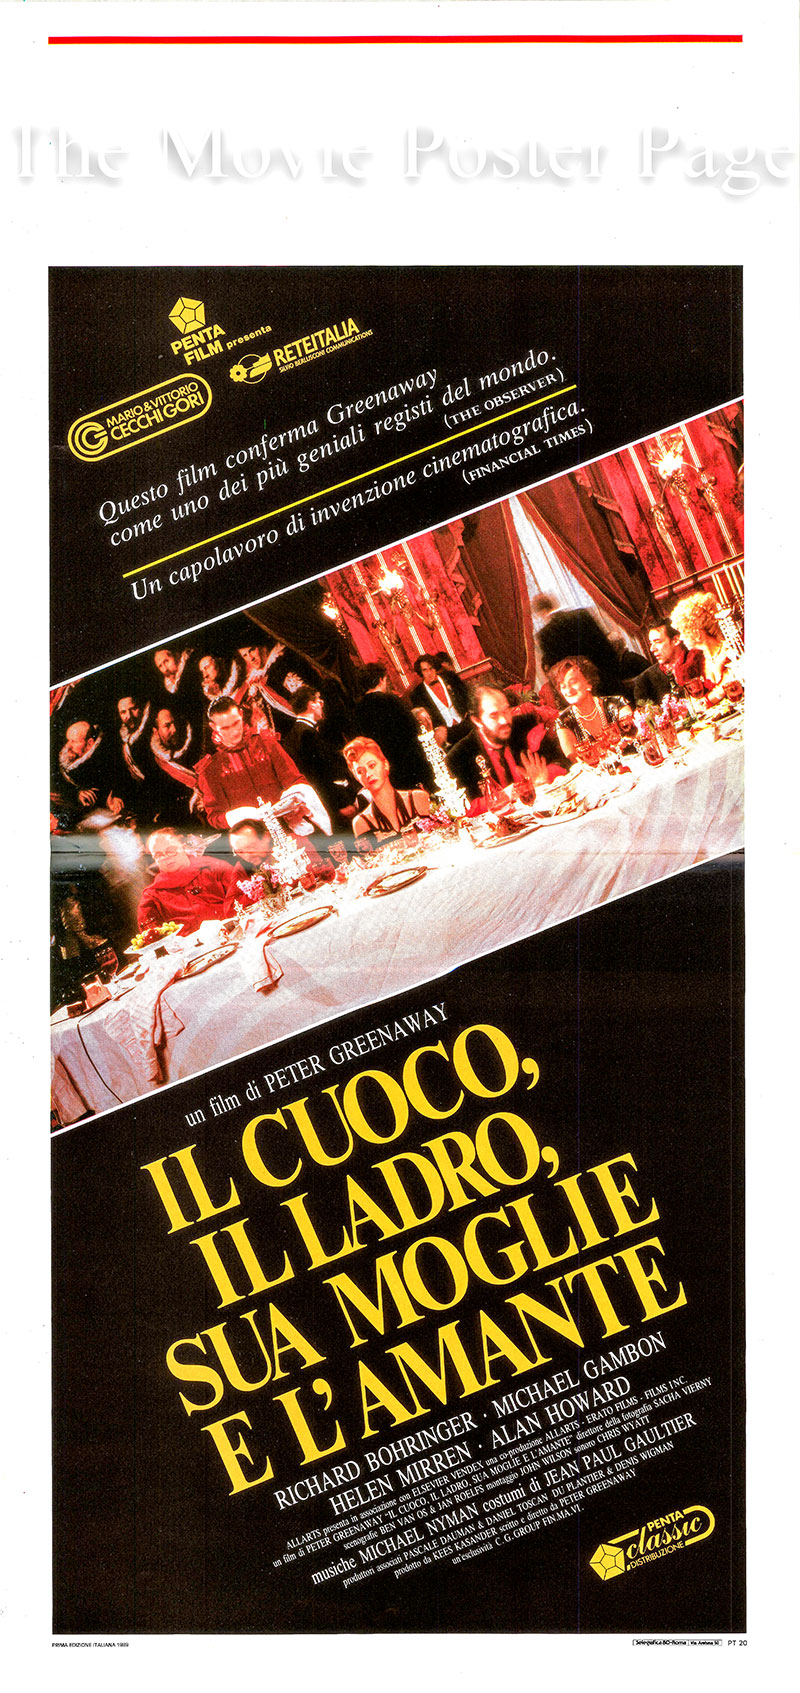 pictured is an Italian locandina poster for the 1989 Peter Greenaway film The Cook, the Thief, His Wife and Her Lover starring Helen Mirren as Georgina.